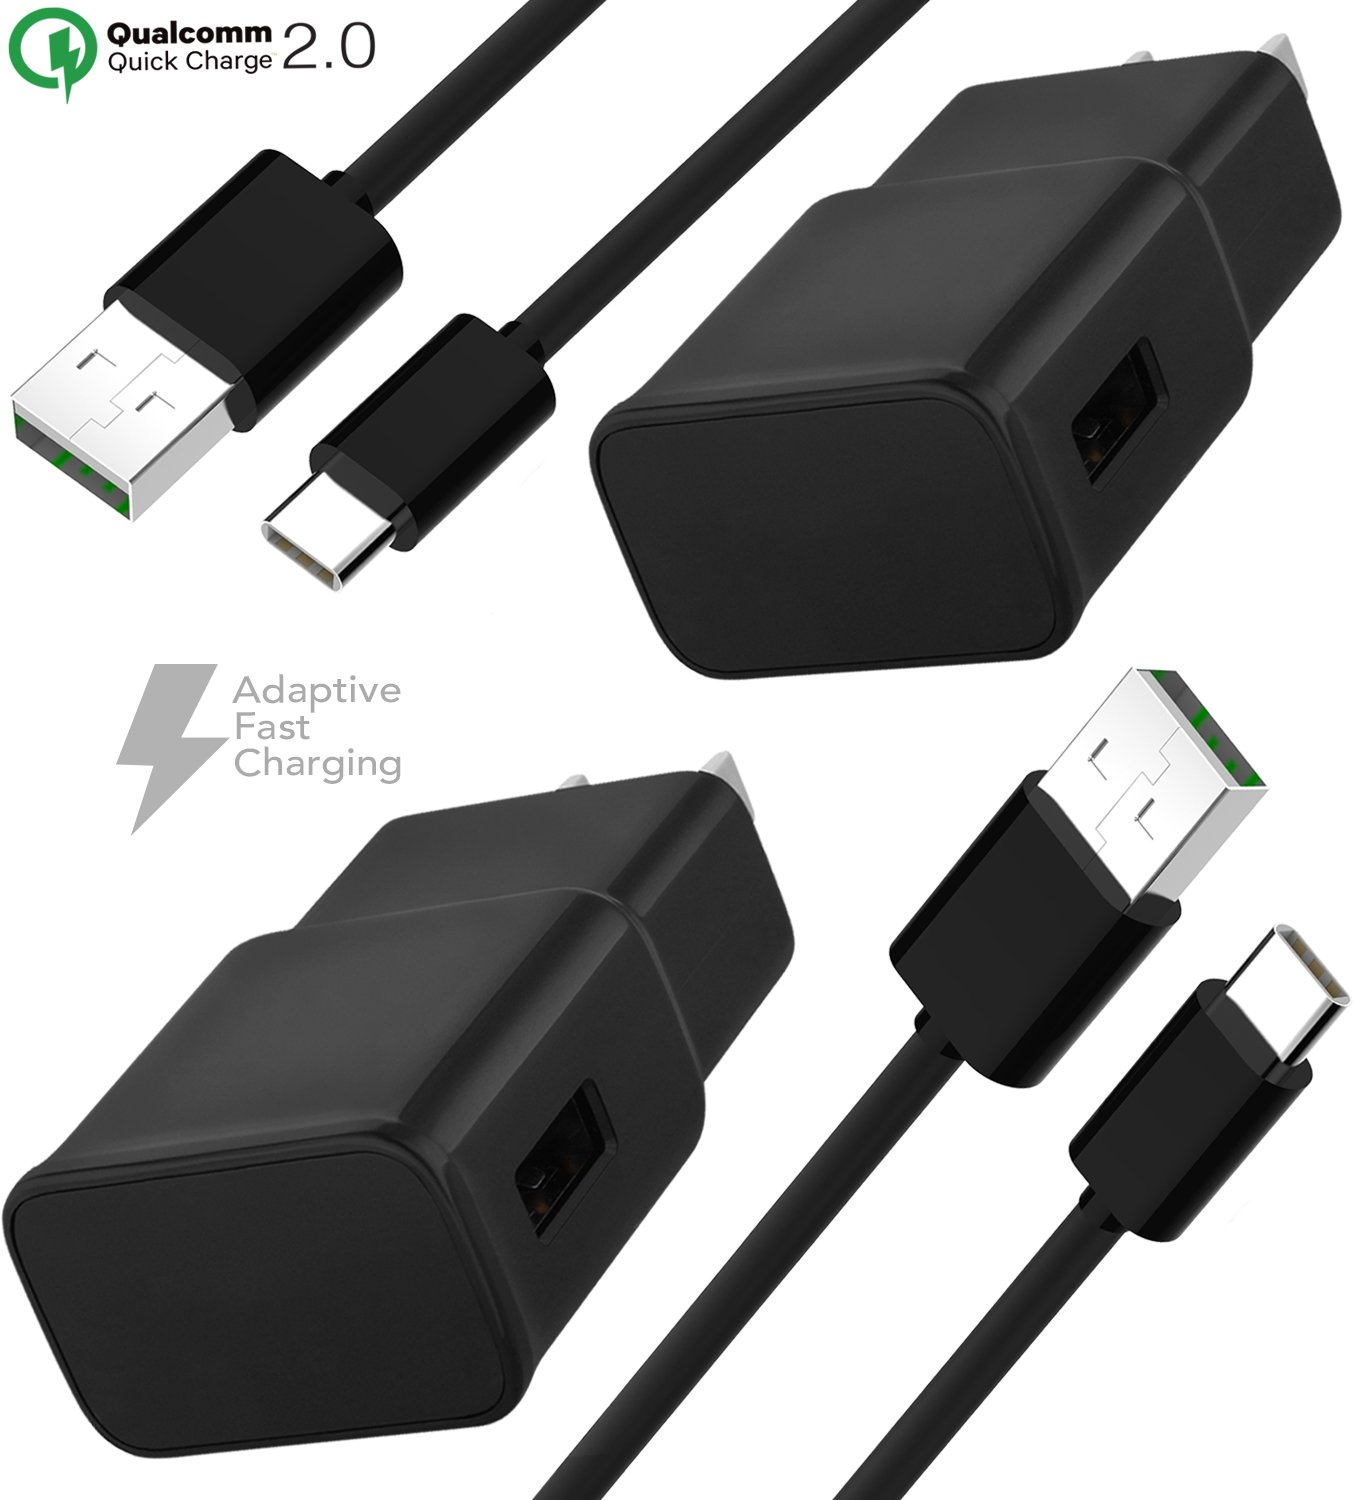 Note 9 USB Type-C Cable Adaptive Fast Wall Charger Samsung Galaxy S9, Galaxy S9 Plus, Galaxy S8, LG G6 G5 V30 V20, Google Pixel 2, Nexus 5X 6p, GoPro5 OnePlus 5, HTC U11 (Fast Wall Carger + 2 Cable)